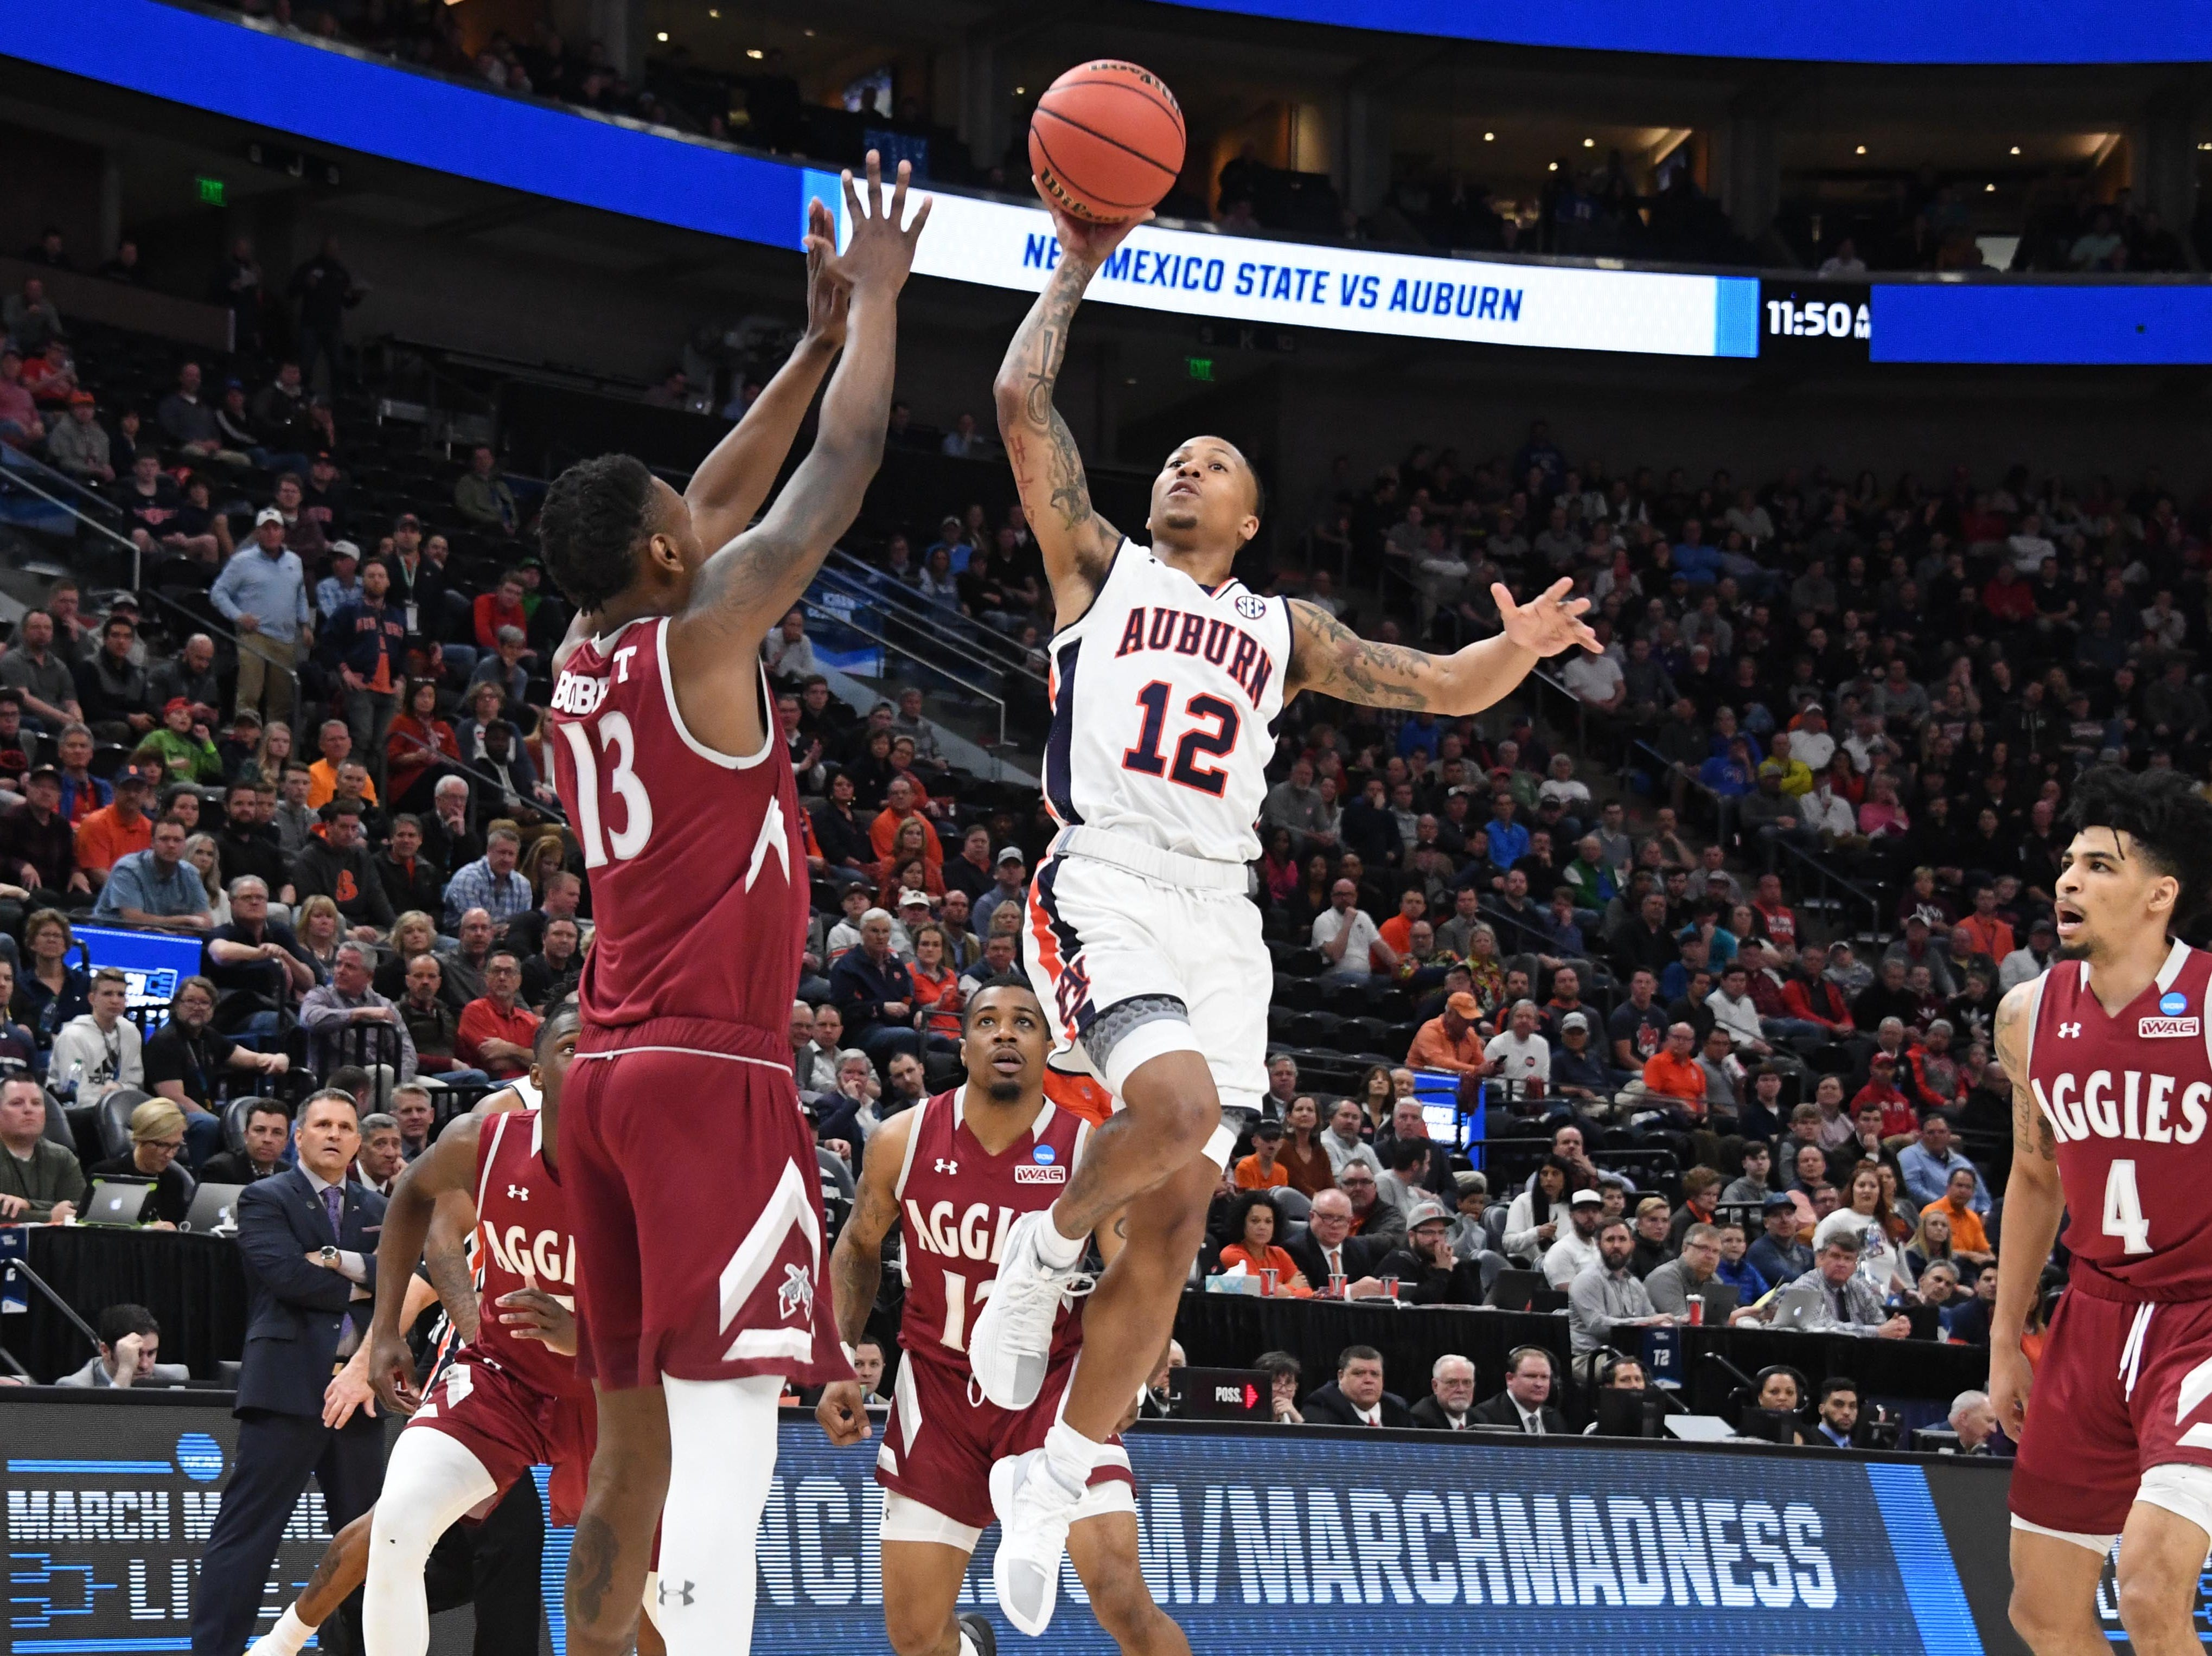 Mar 21, 2019; Salt Lake City, UT, USA; Auburn Tigers guard J'Von McCormick (12) shoots as New Mexico State Aggies forward C.J. Bobbitt (13) defends during the first half in the first round of the 2019 NCAA Tournament at Vivint Smart Home Arena. Mandatory Credit: Kirby Lee-USA TODAY Sports